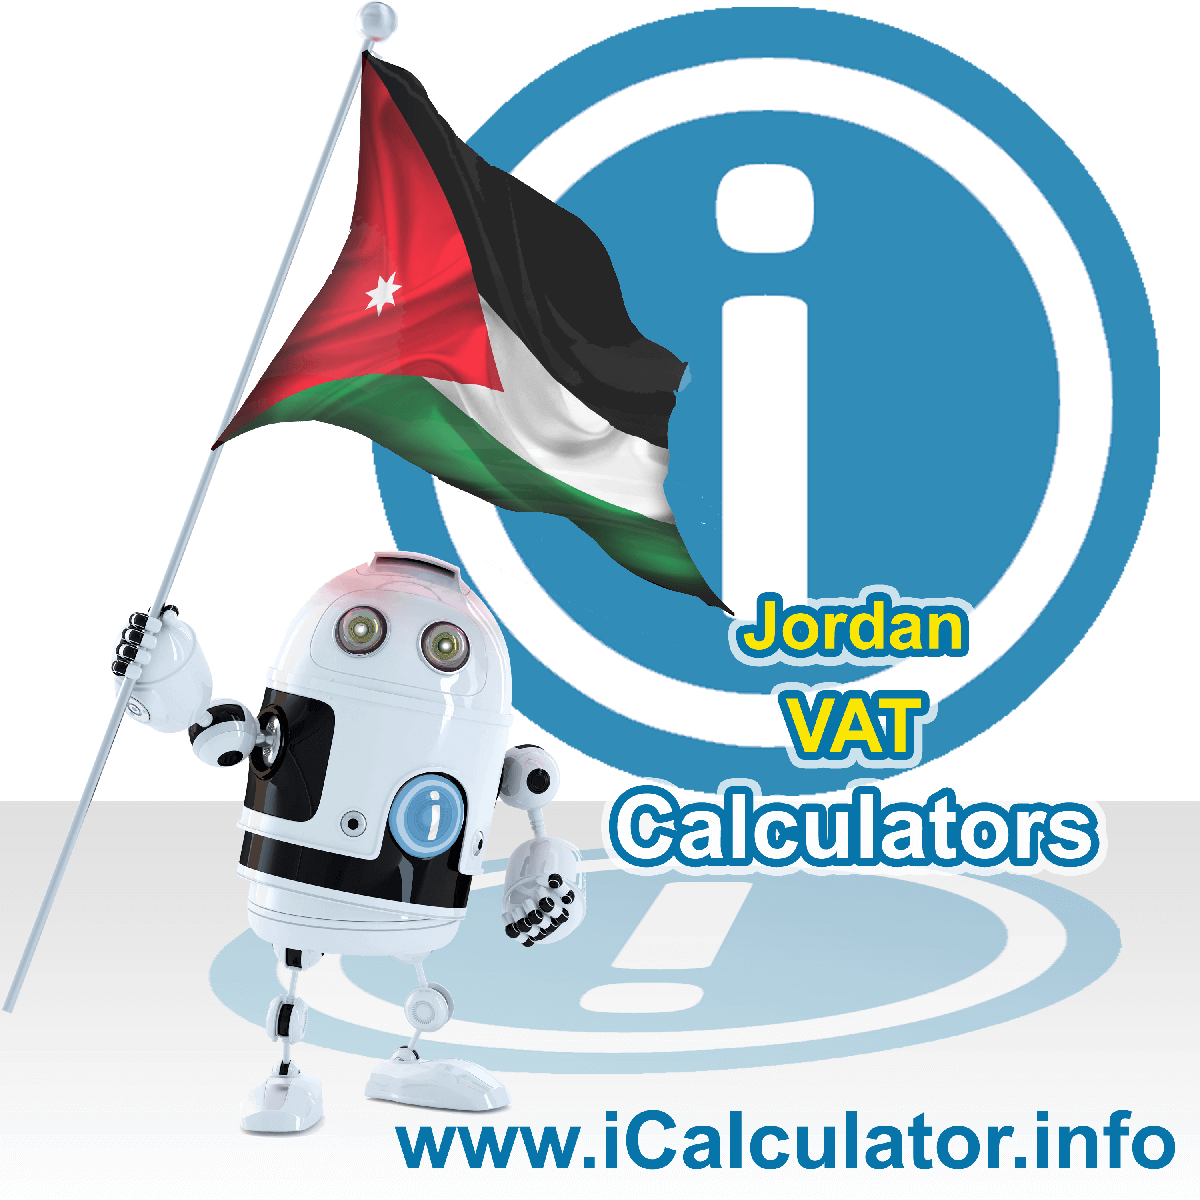 Jordan VAT Calculator. This image shows the Jordan flag and information relating to the VAT formula used for calculating Value Added Tax in Jordan using the Jordan VAT Calculator in 2021